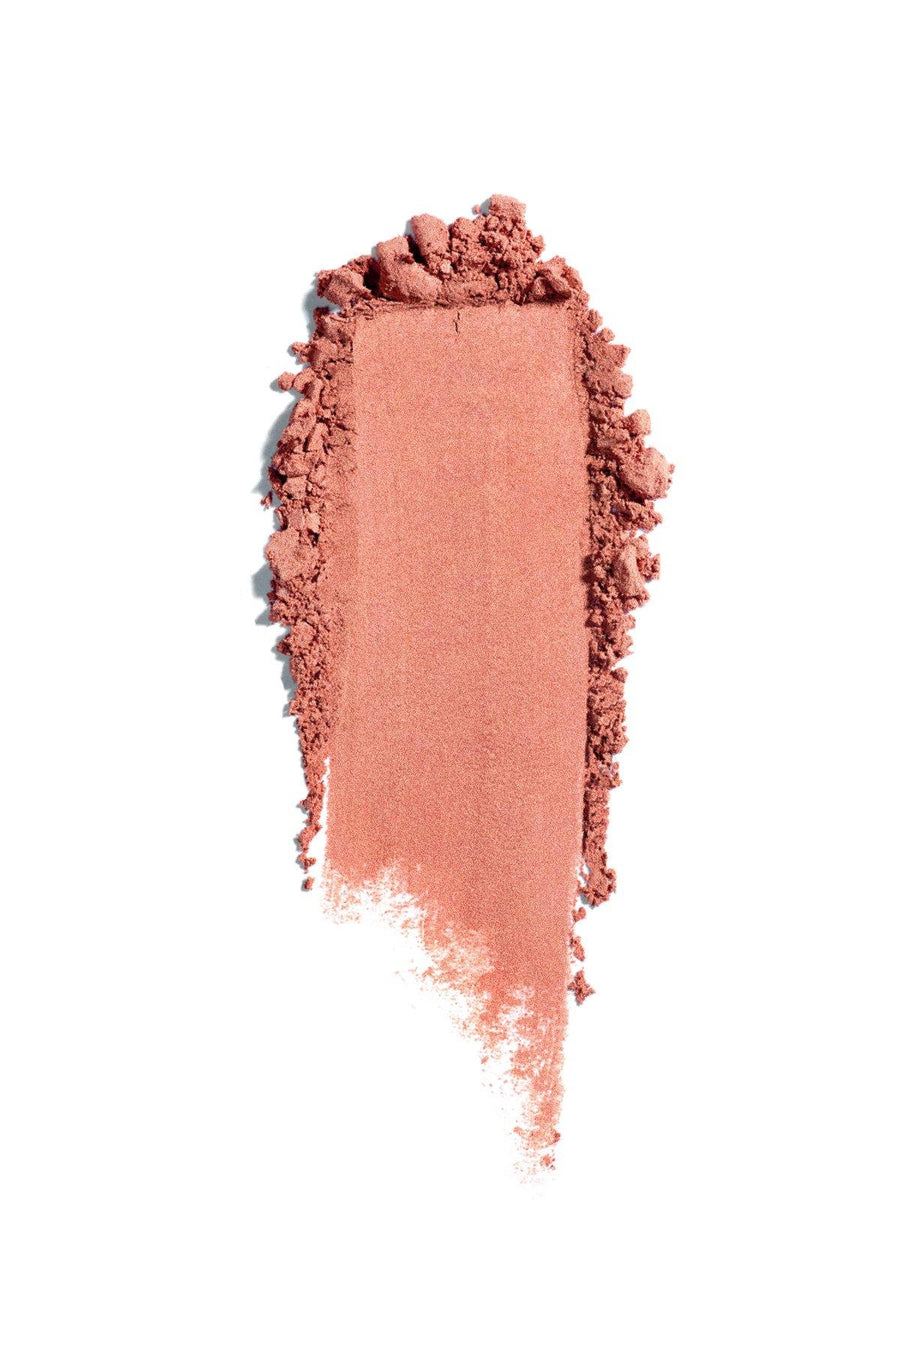 Mineral Blush #5 - Desert Rose